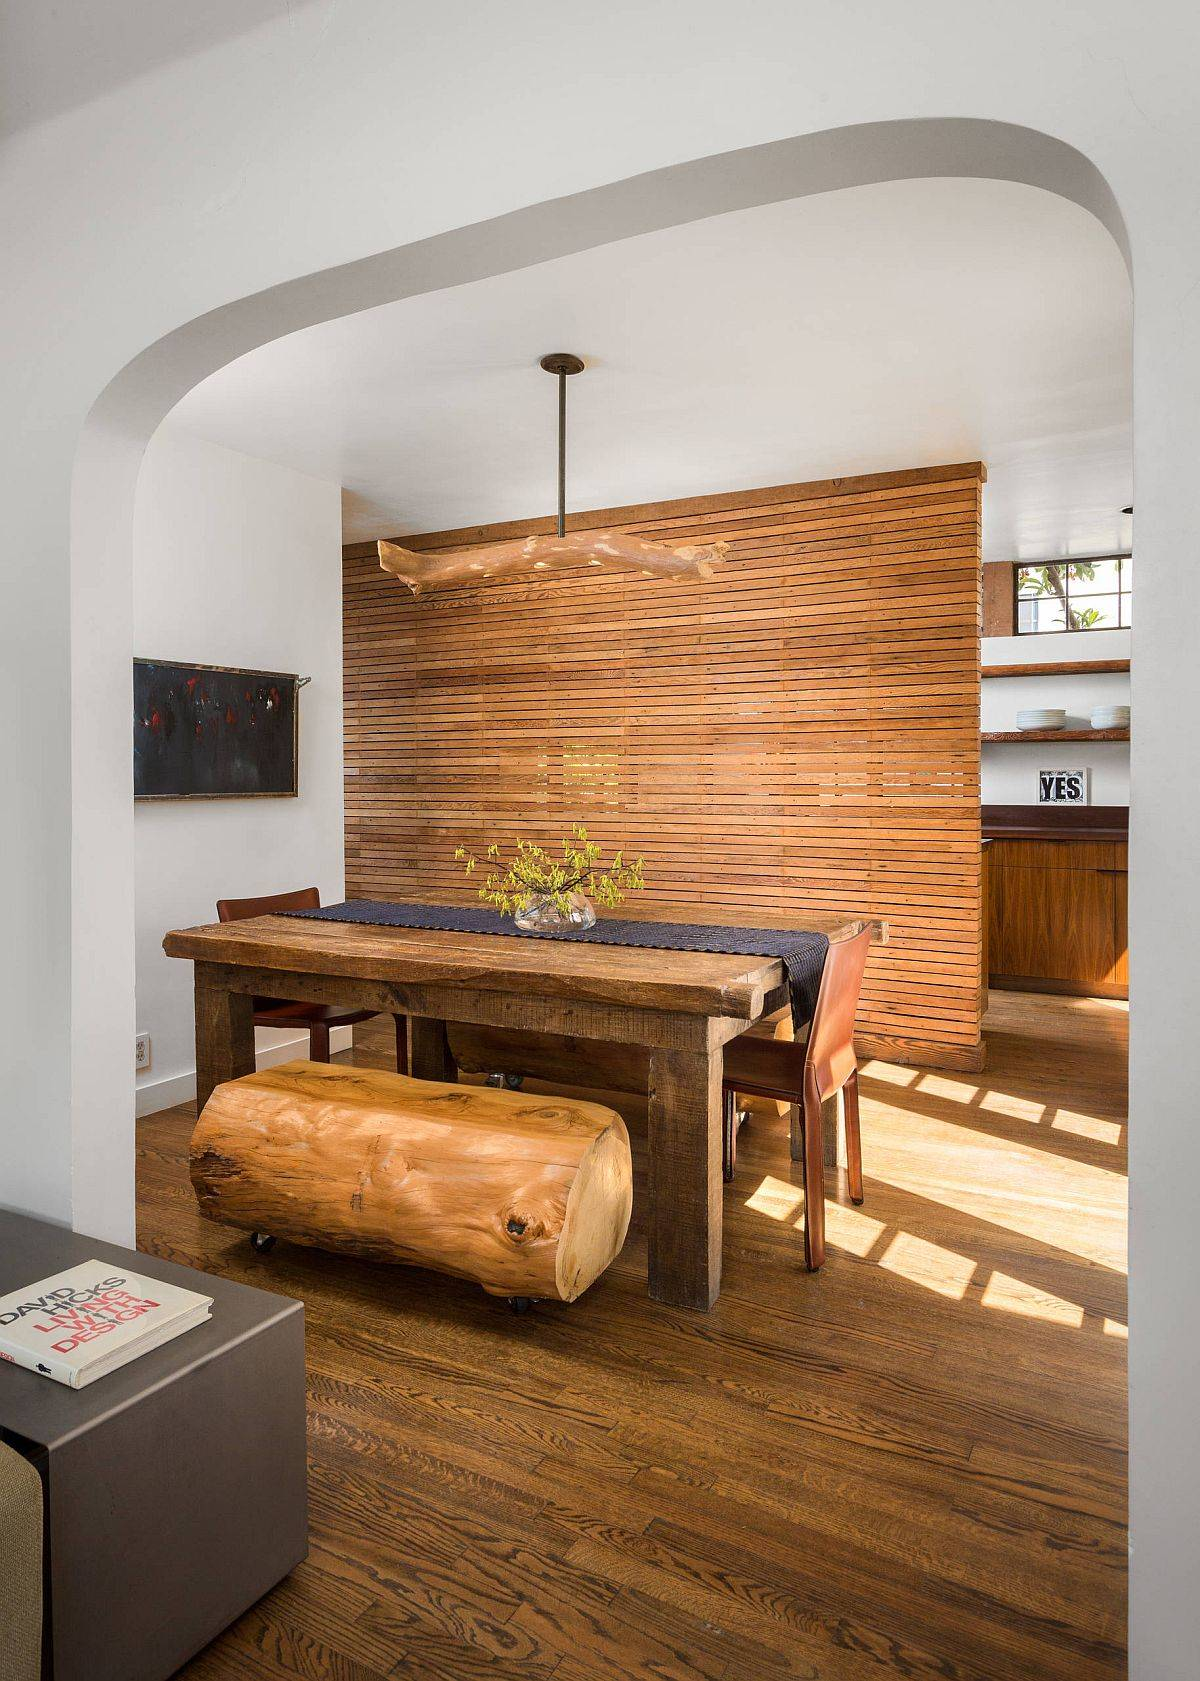 Room-divider-between-the-dining-area-and-kitchen-made-with-horizontal-wooden-slats-also-acts-as-the-kitchen-wall-25638